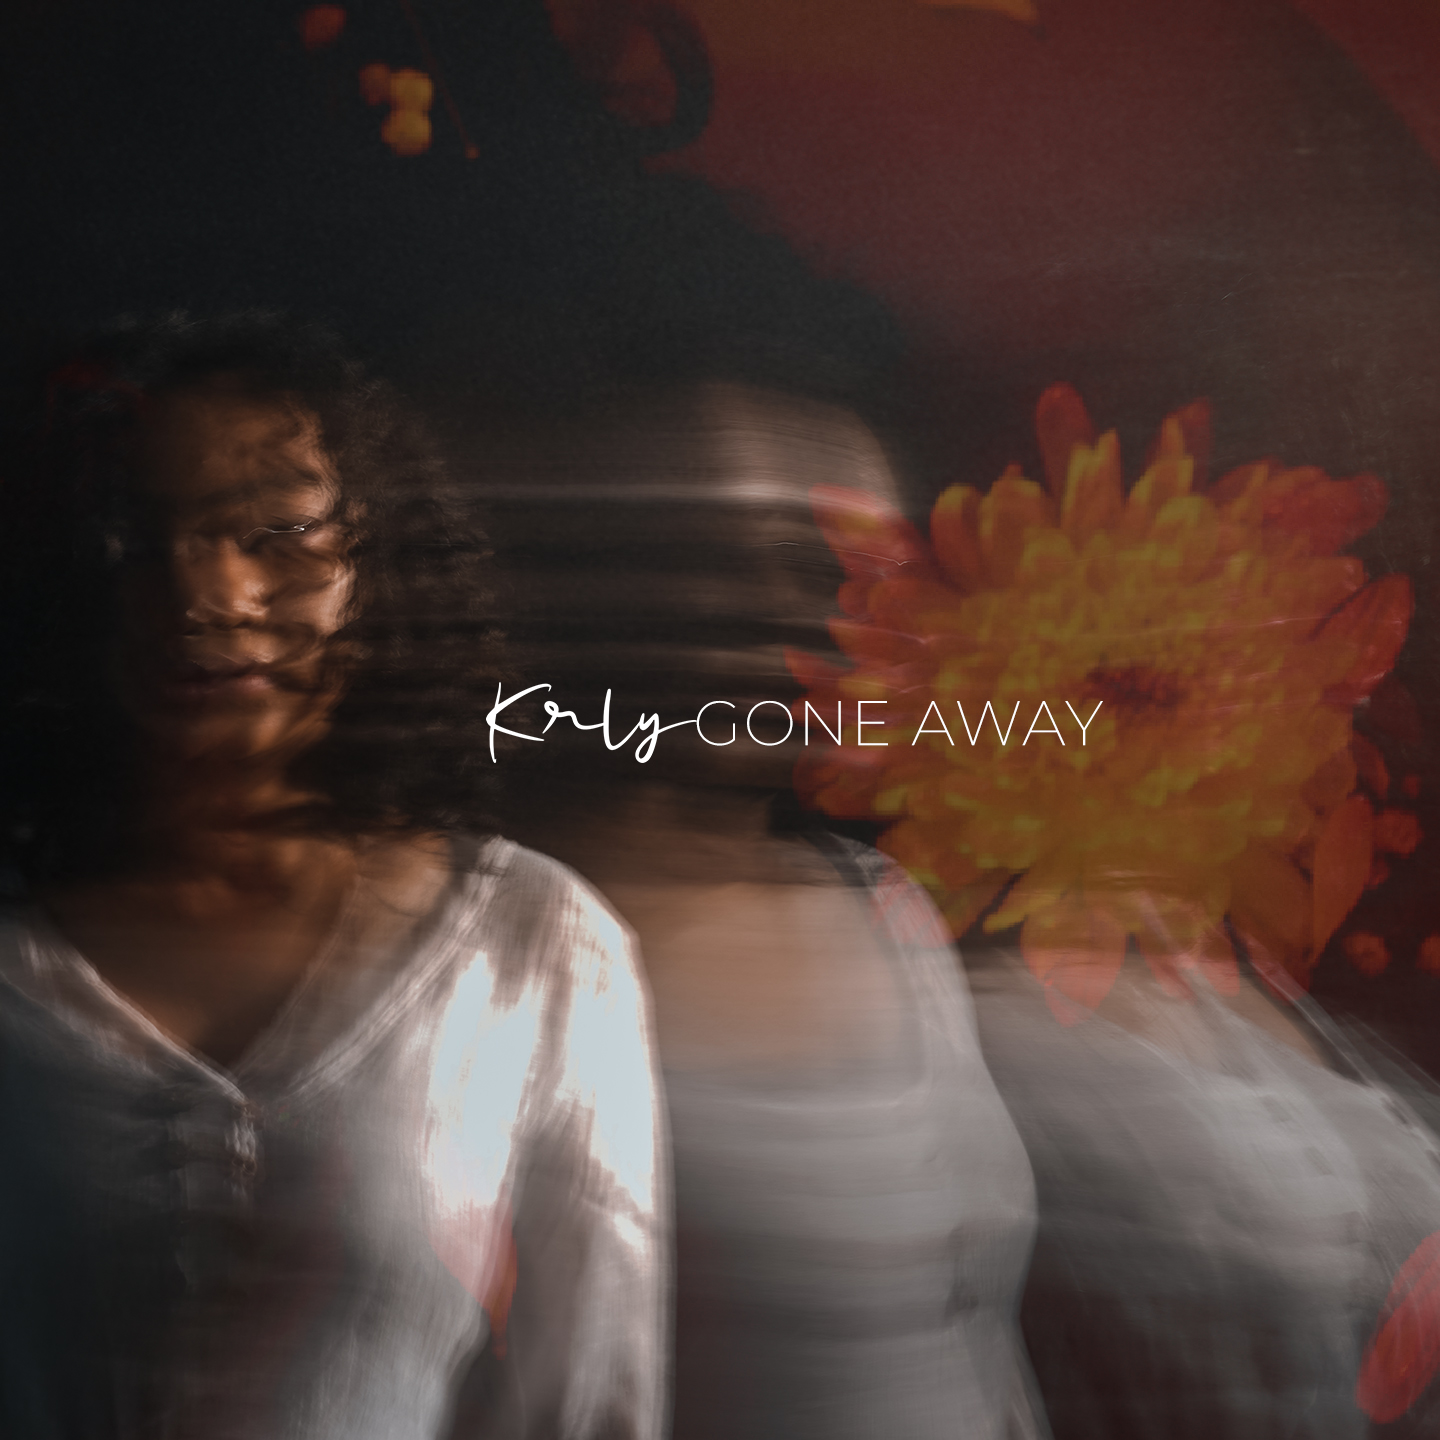 krly-rilis-single-kedua-gone-away